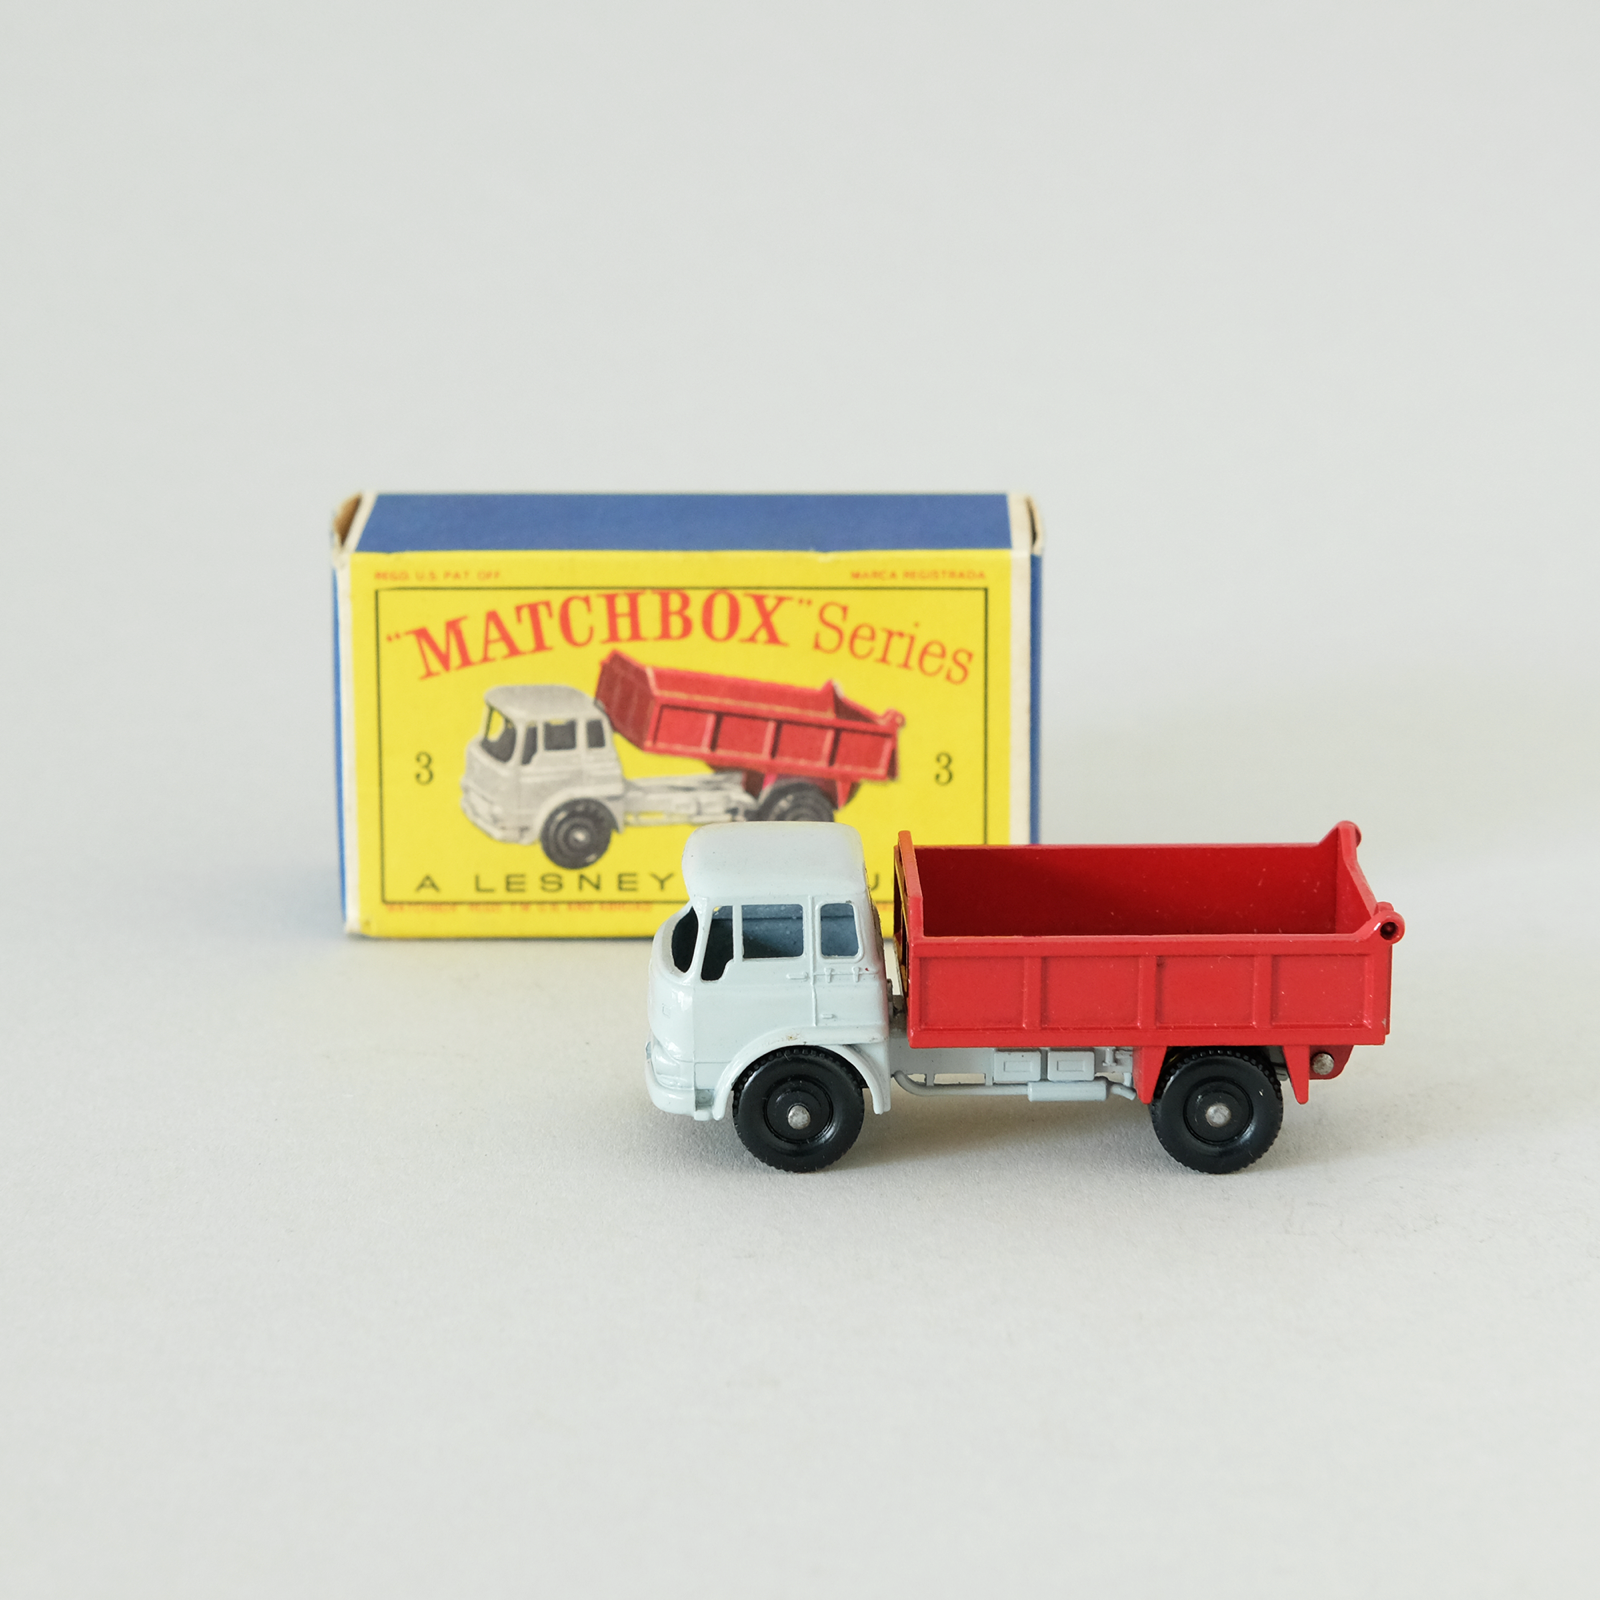 MINT CONDITION WITH BOX MatchBox Lesney Bedford Tipper 3 EXTREMELY RARE